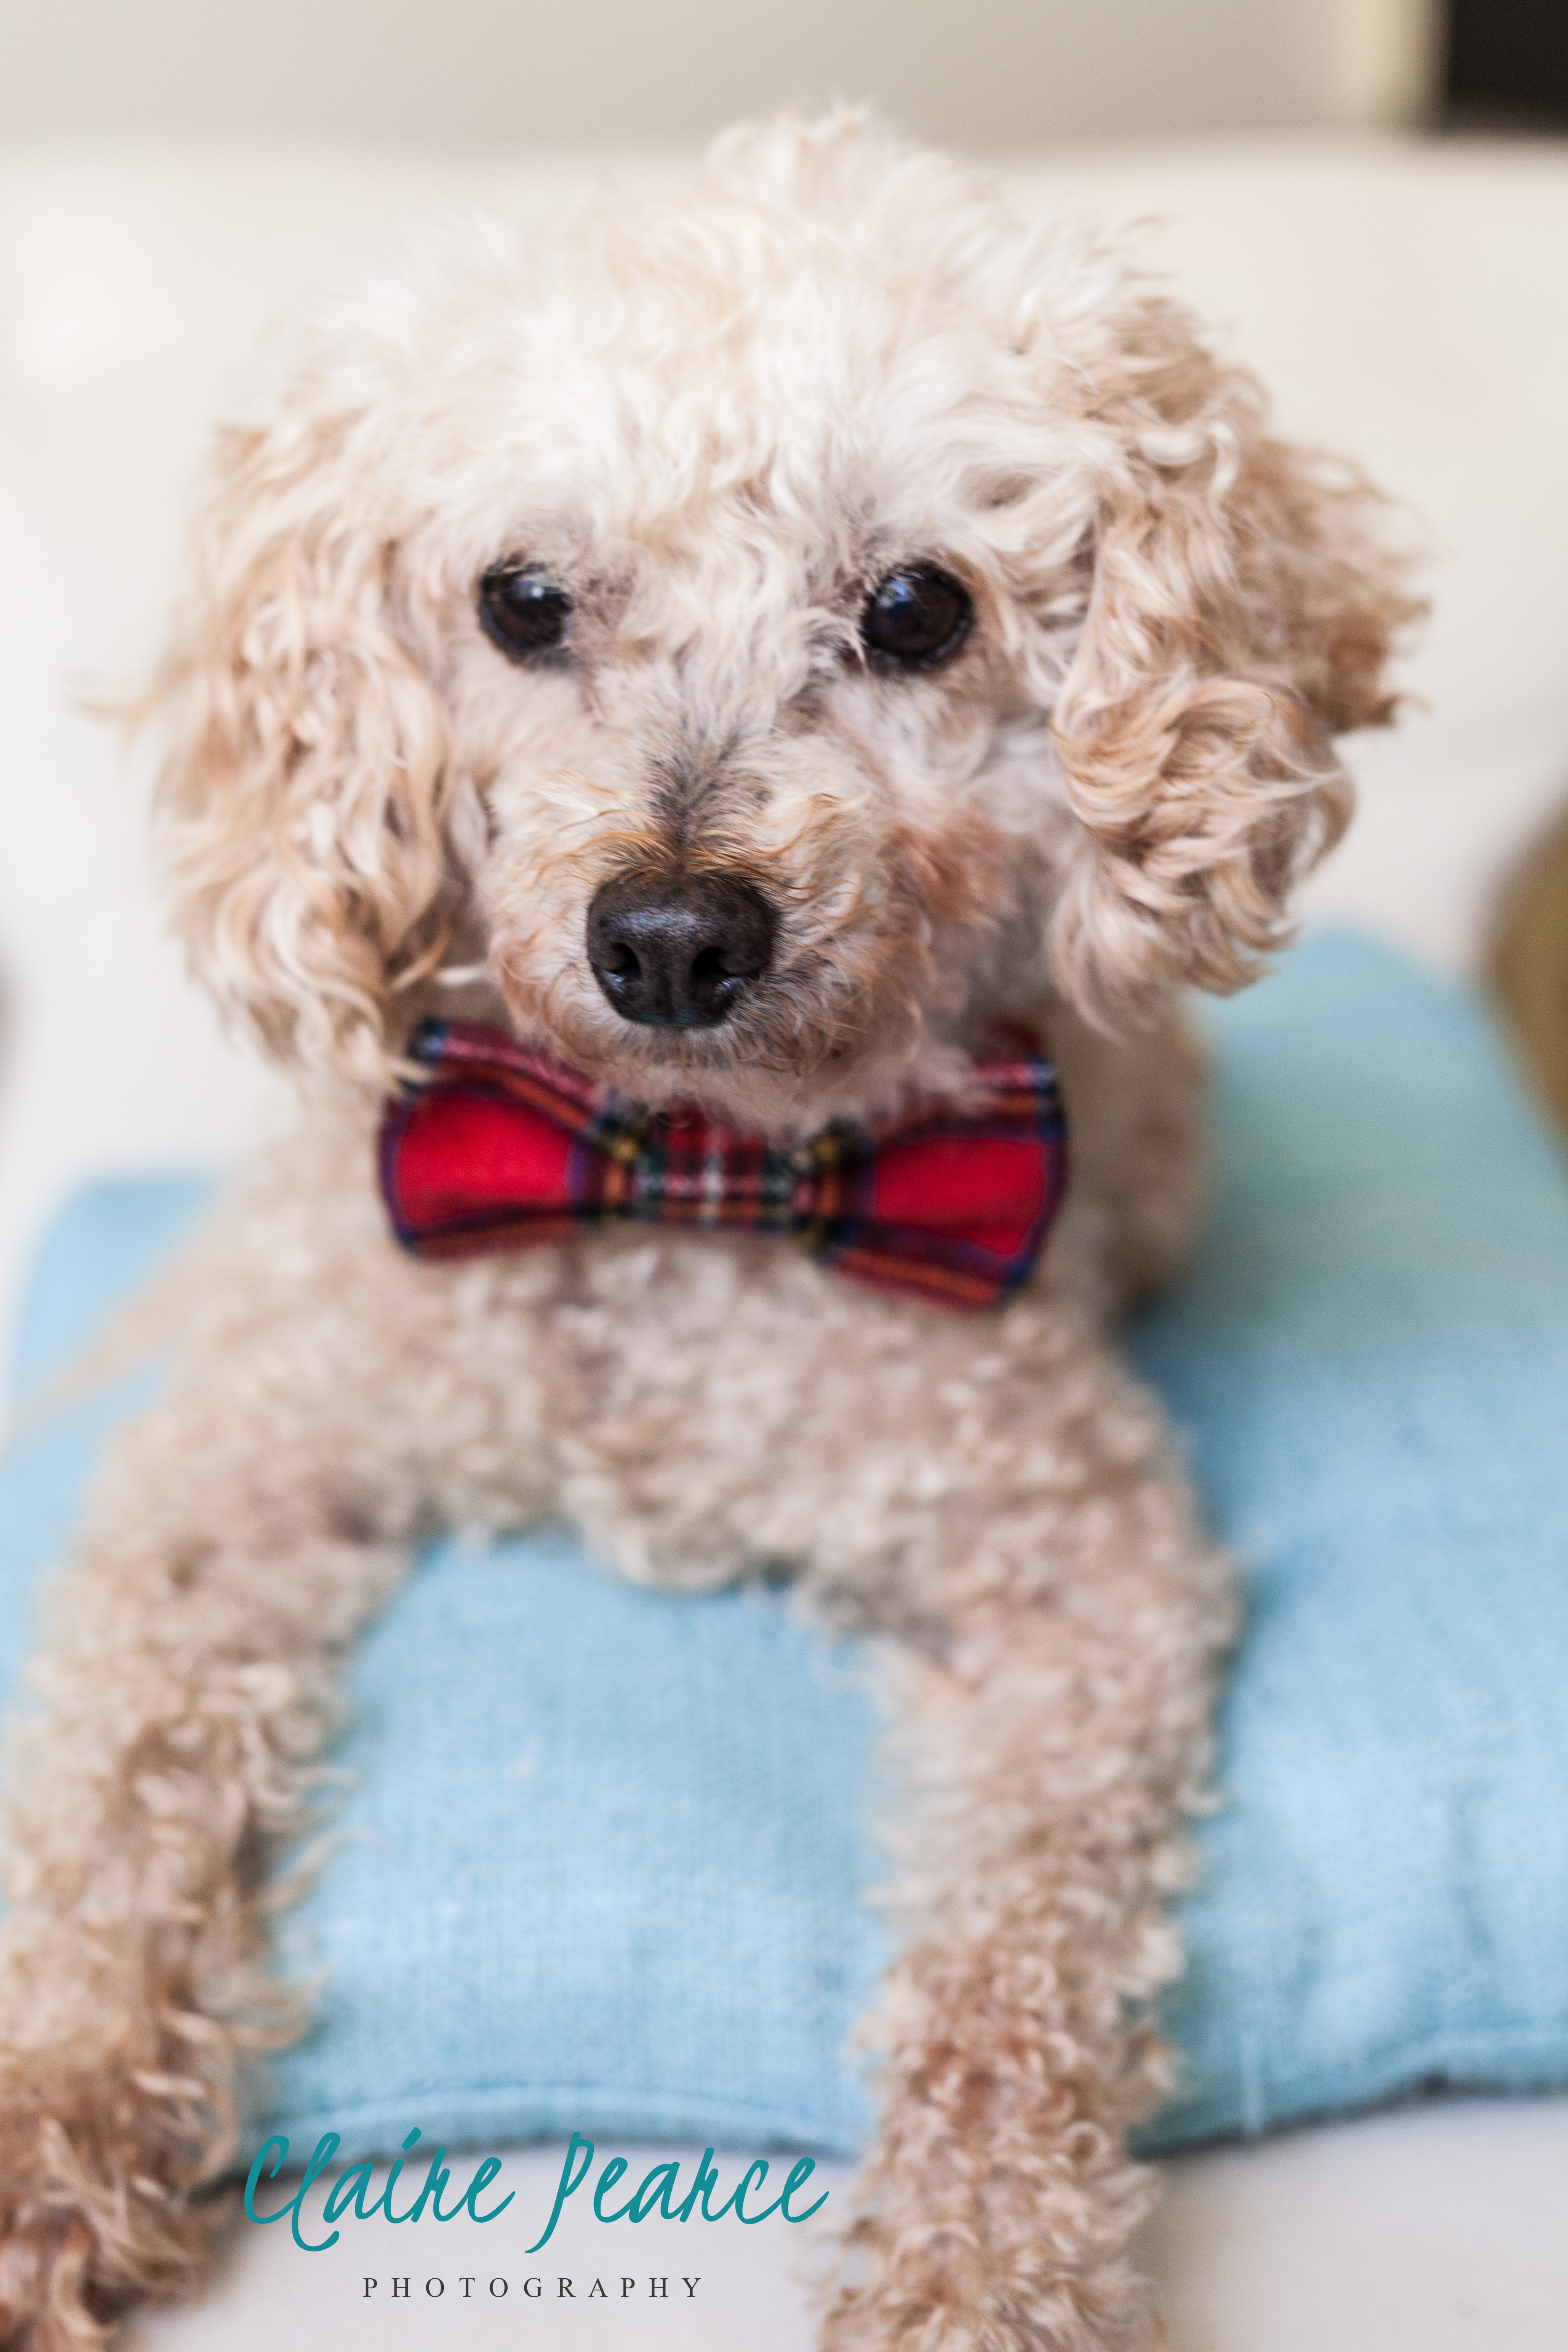 Lucky : Dogs Without Borders – Los Angeles Dog Rescue